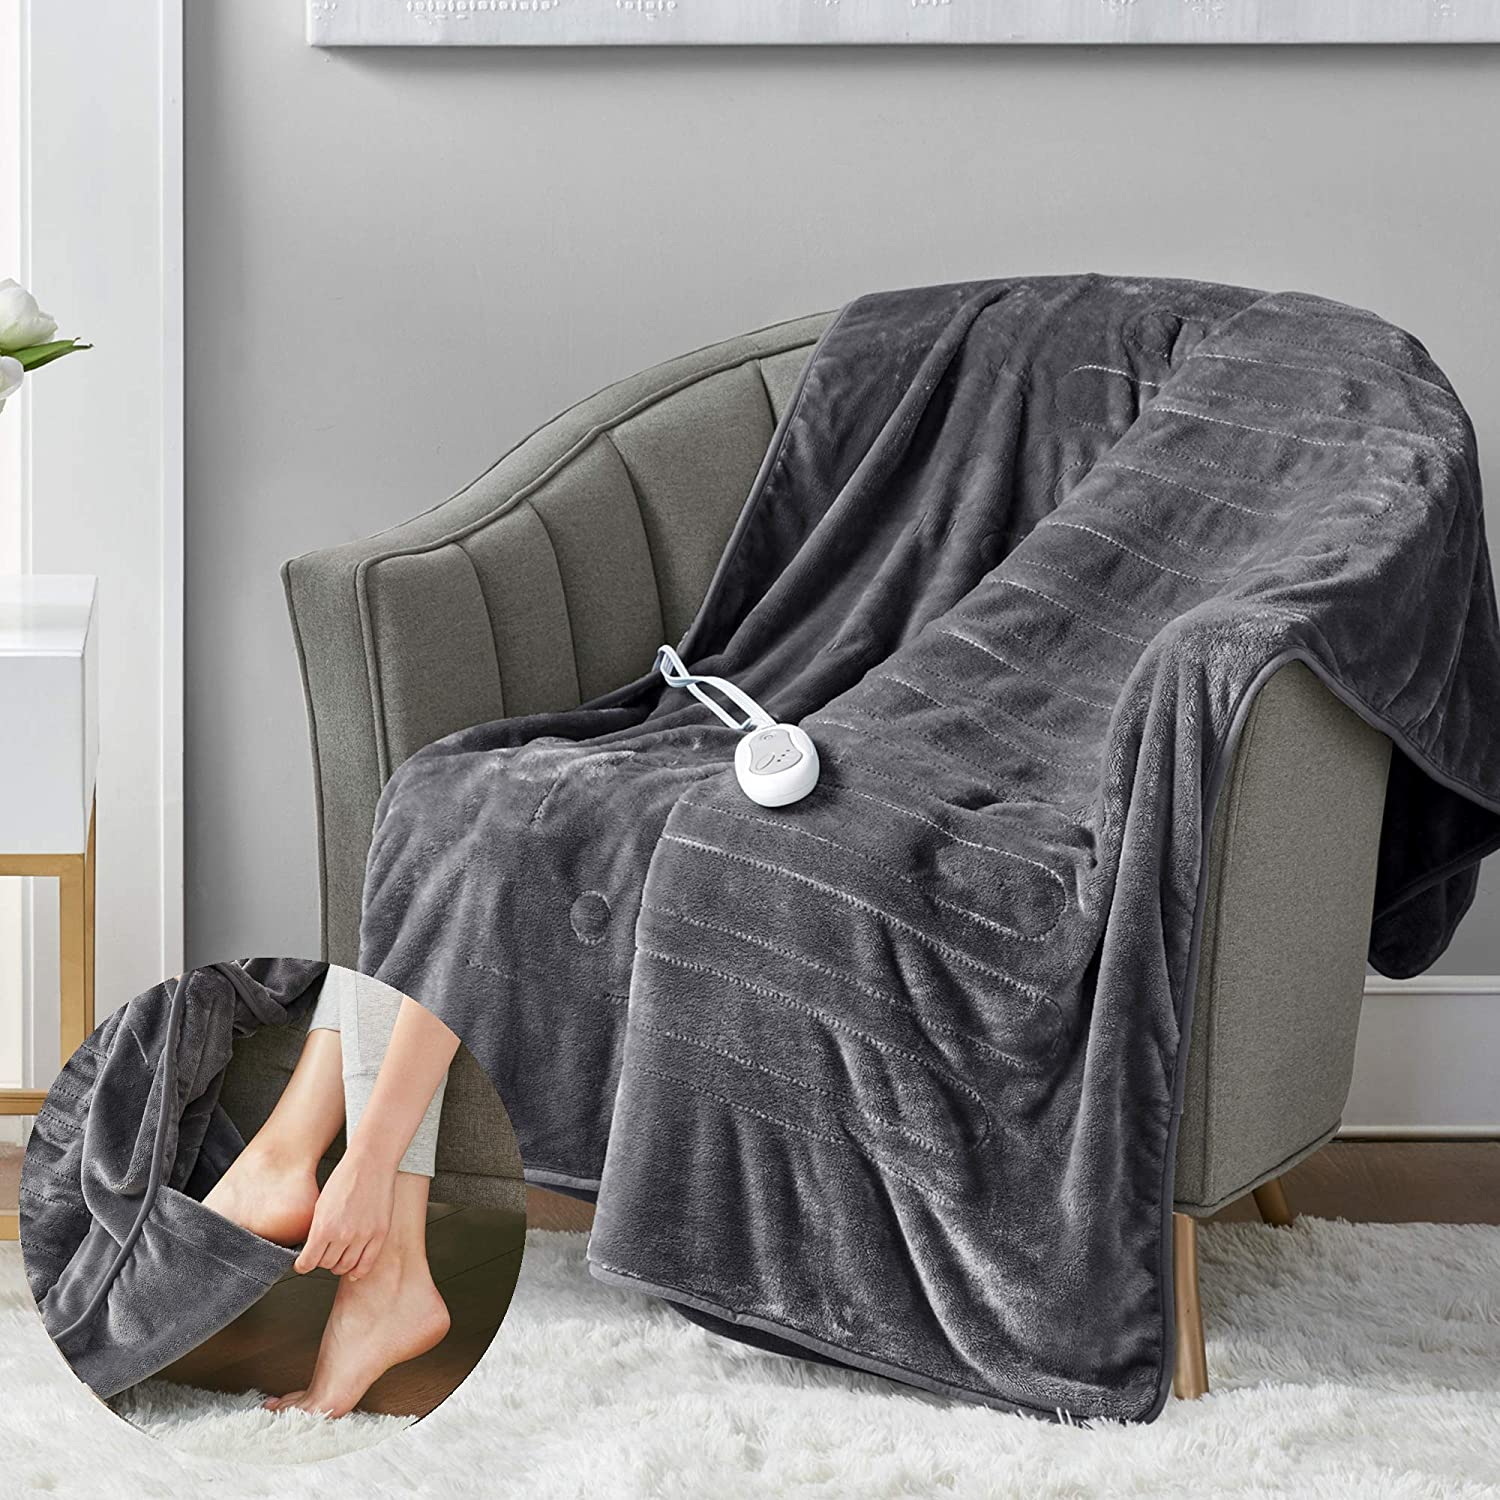 Microplush Electric Blanket with Foot Pocket Grey 50x62   Heated Lap Throw for Home or Office - Keeps Toes Toasty   3 Heat Settings with Auto Shut Off   6Ft Power Cord   Washable : Home & Kitchen